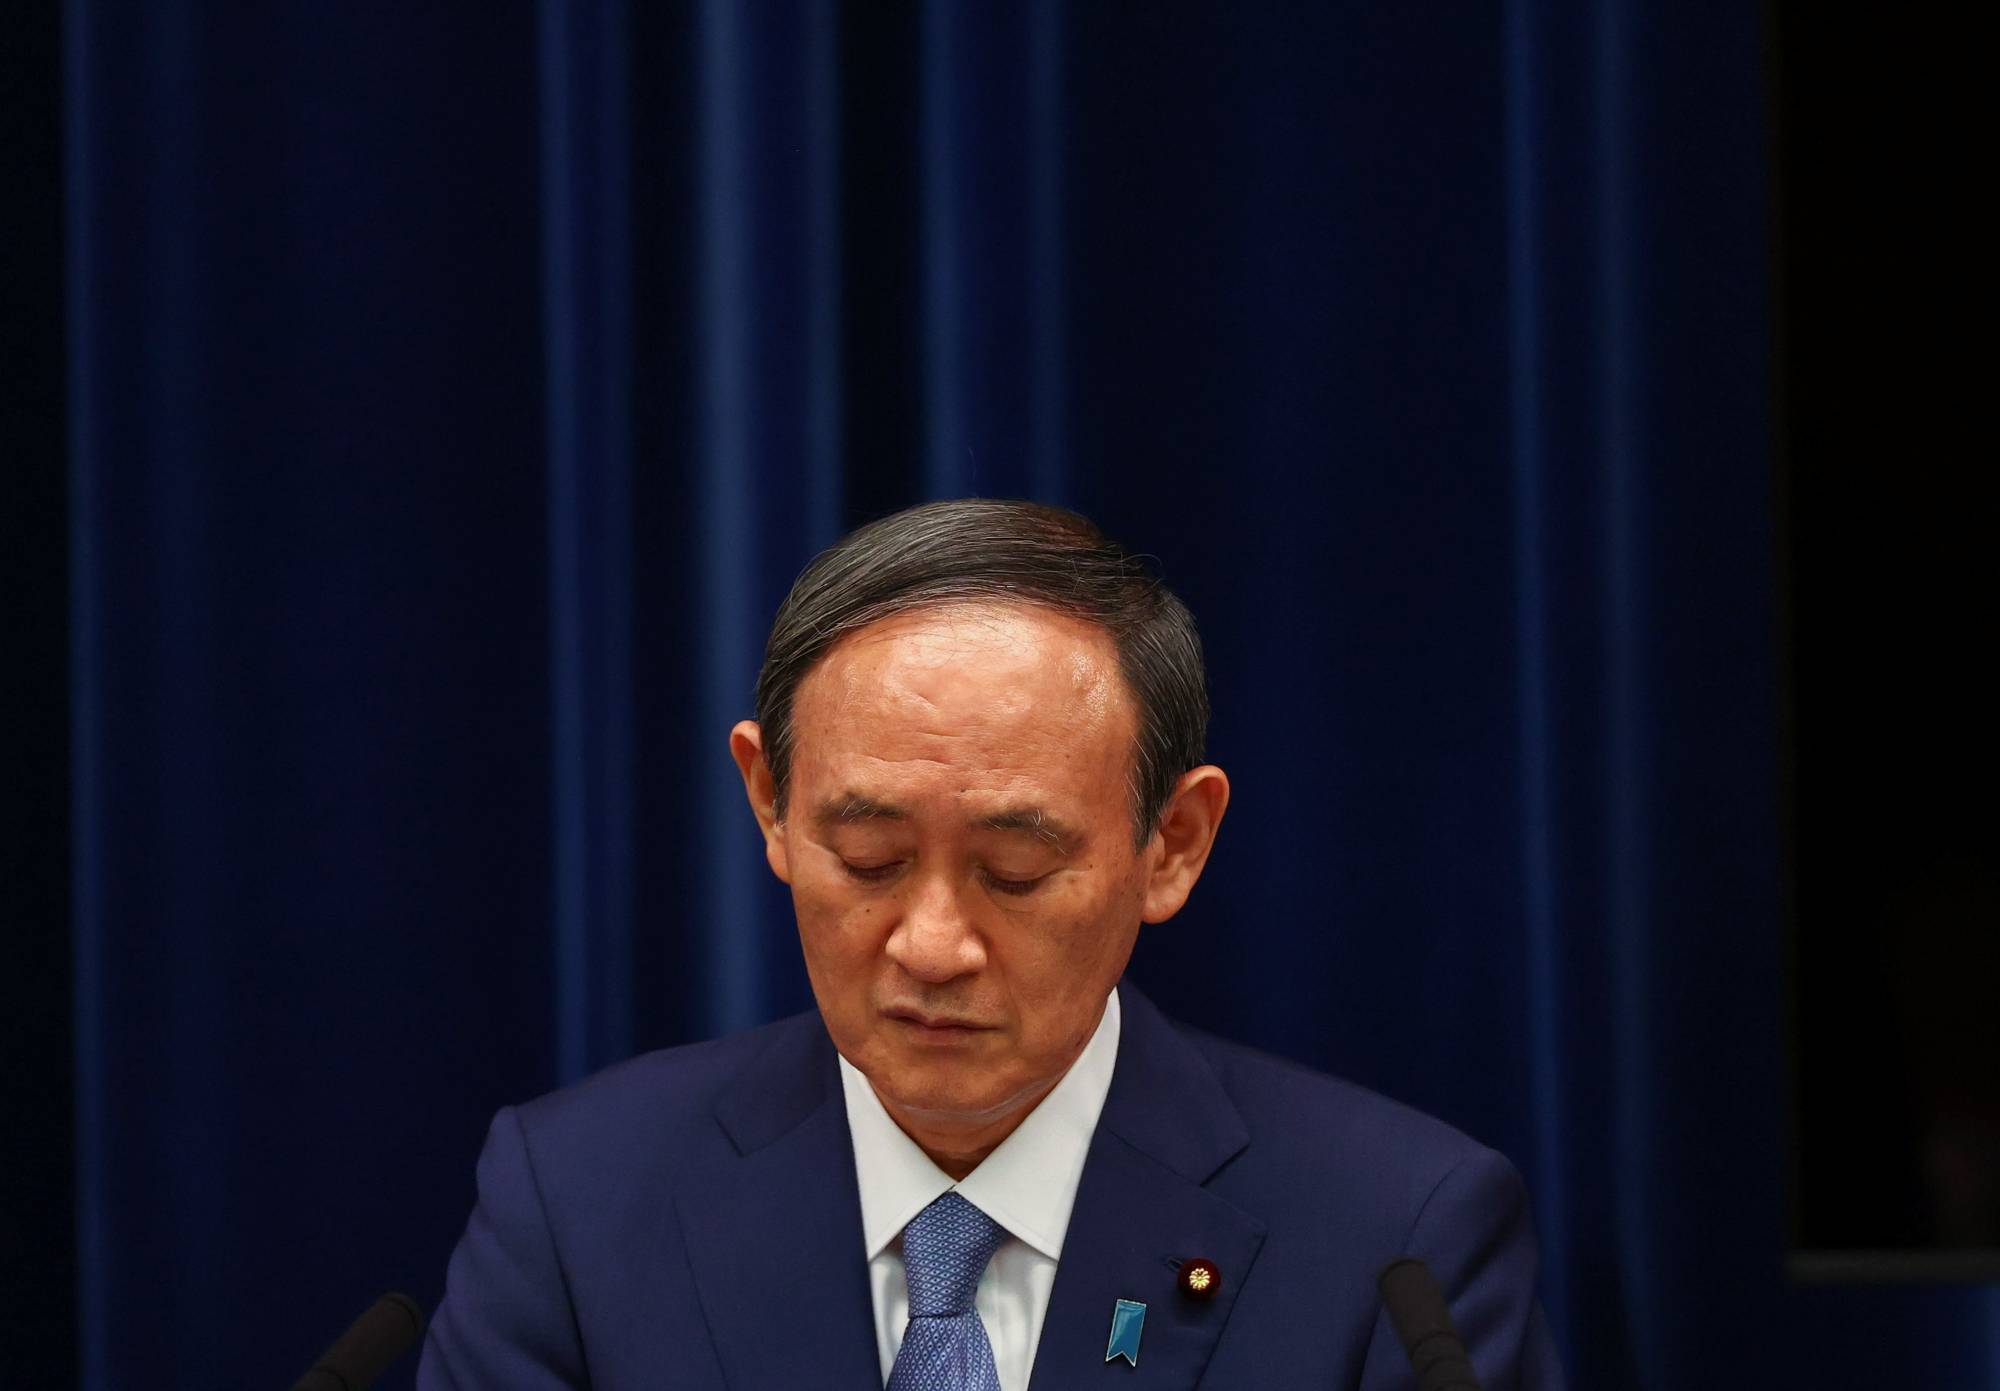 Prime Minister Yoshihide Suga attends a news conference on the response to the COVID-19 pandemic, in Tokyo on July 30.   REUTERS